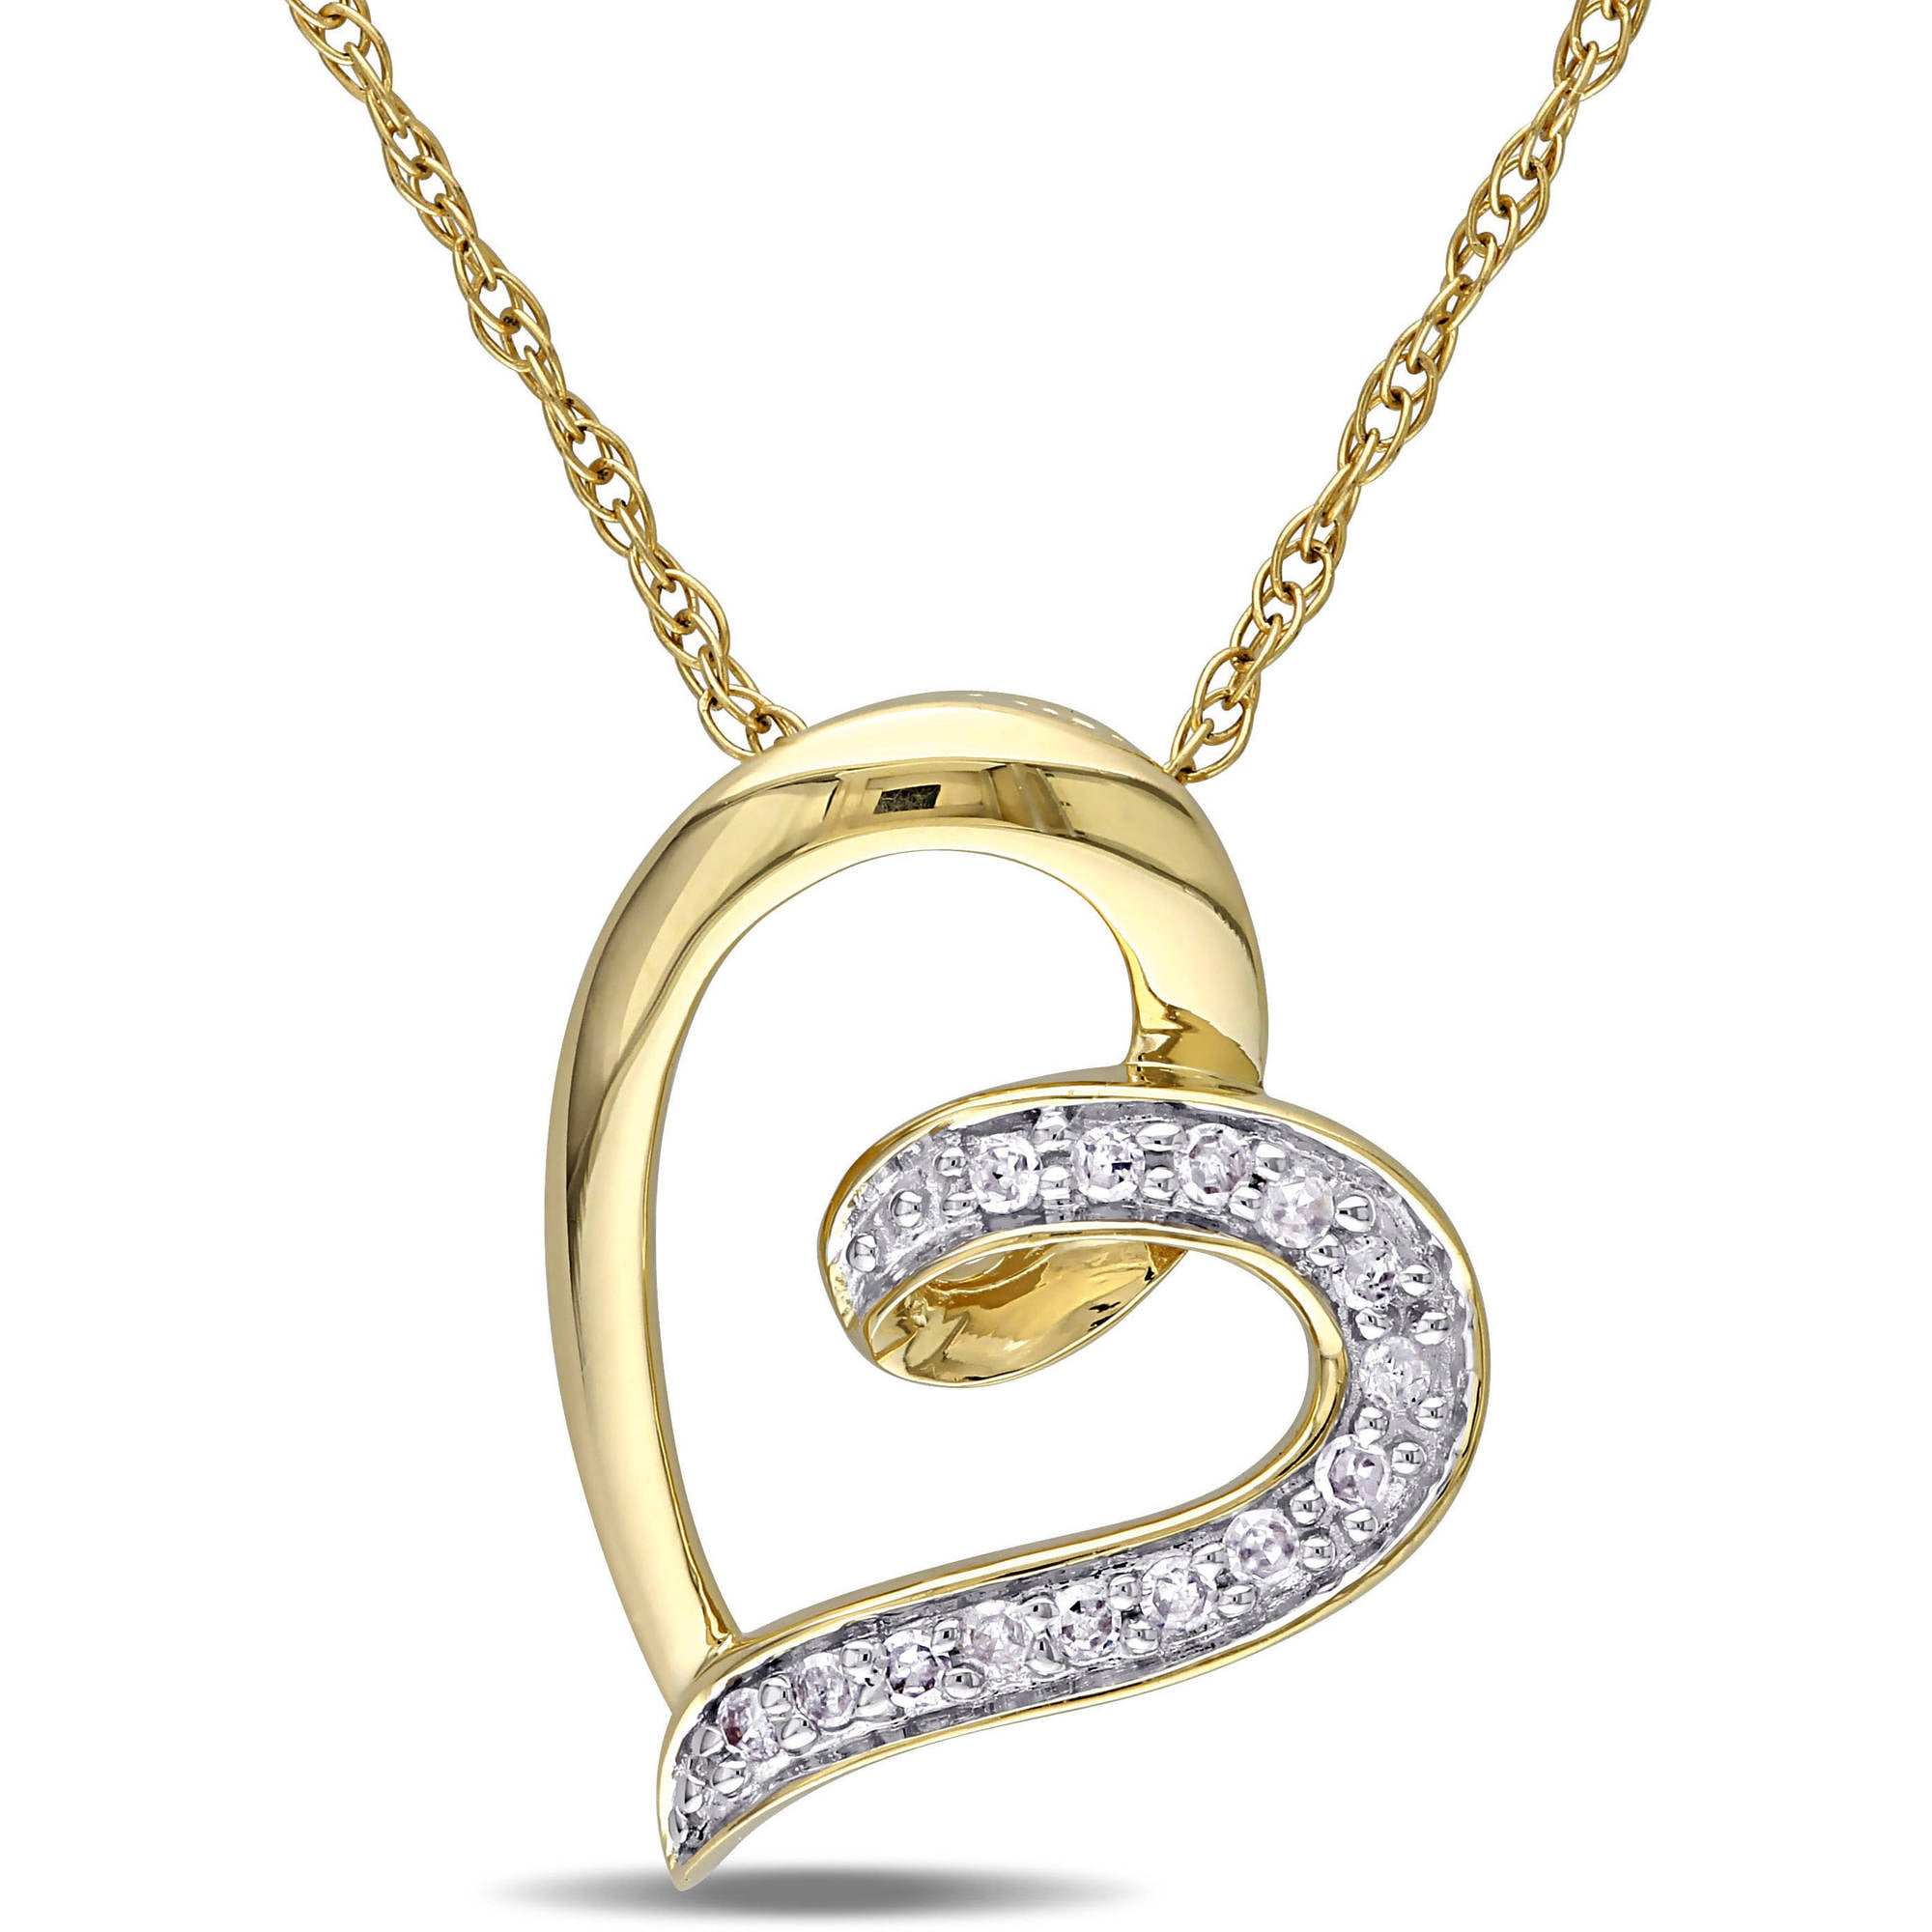 "Miabella Diamond Accent 10kt Yellow Gold Heart Women's Pendant Necklace, 17"" by Delmar Manufacturing LLC"